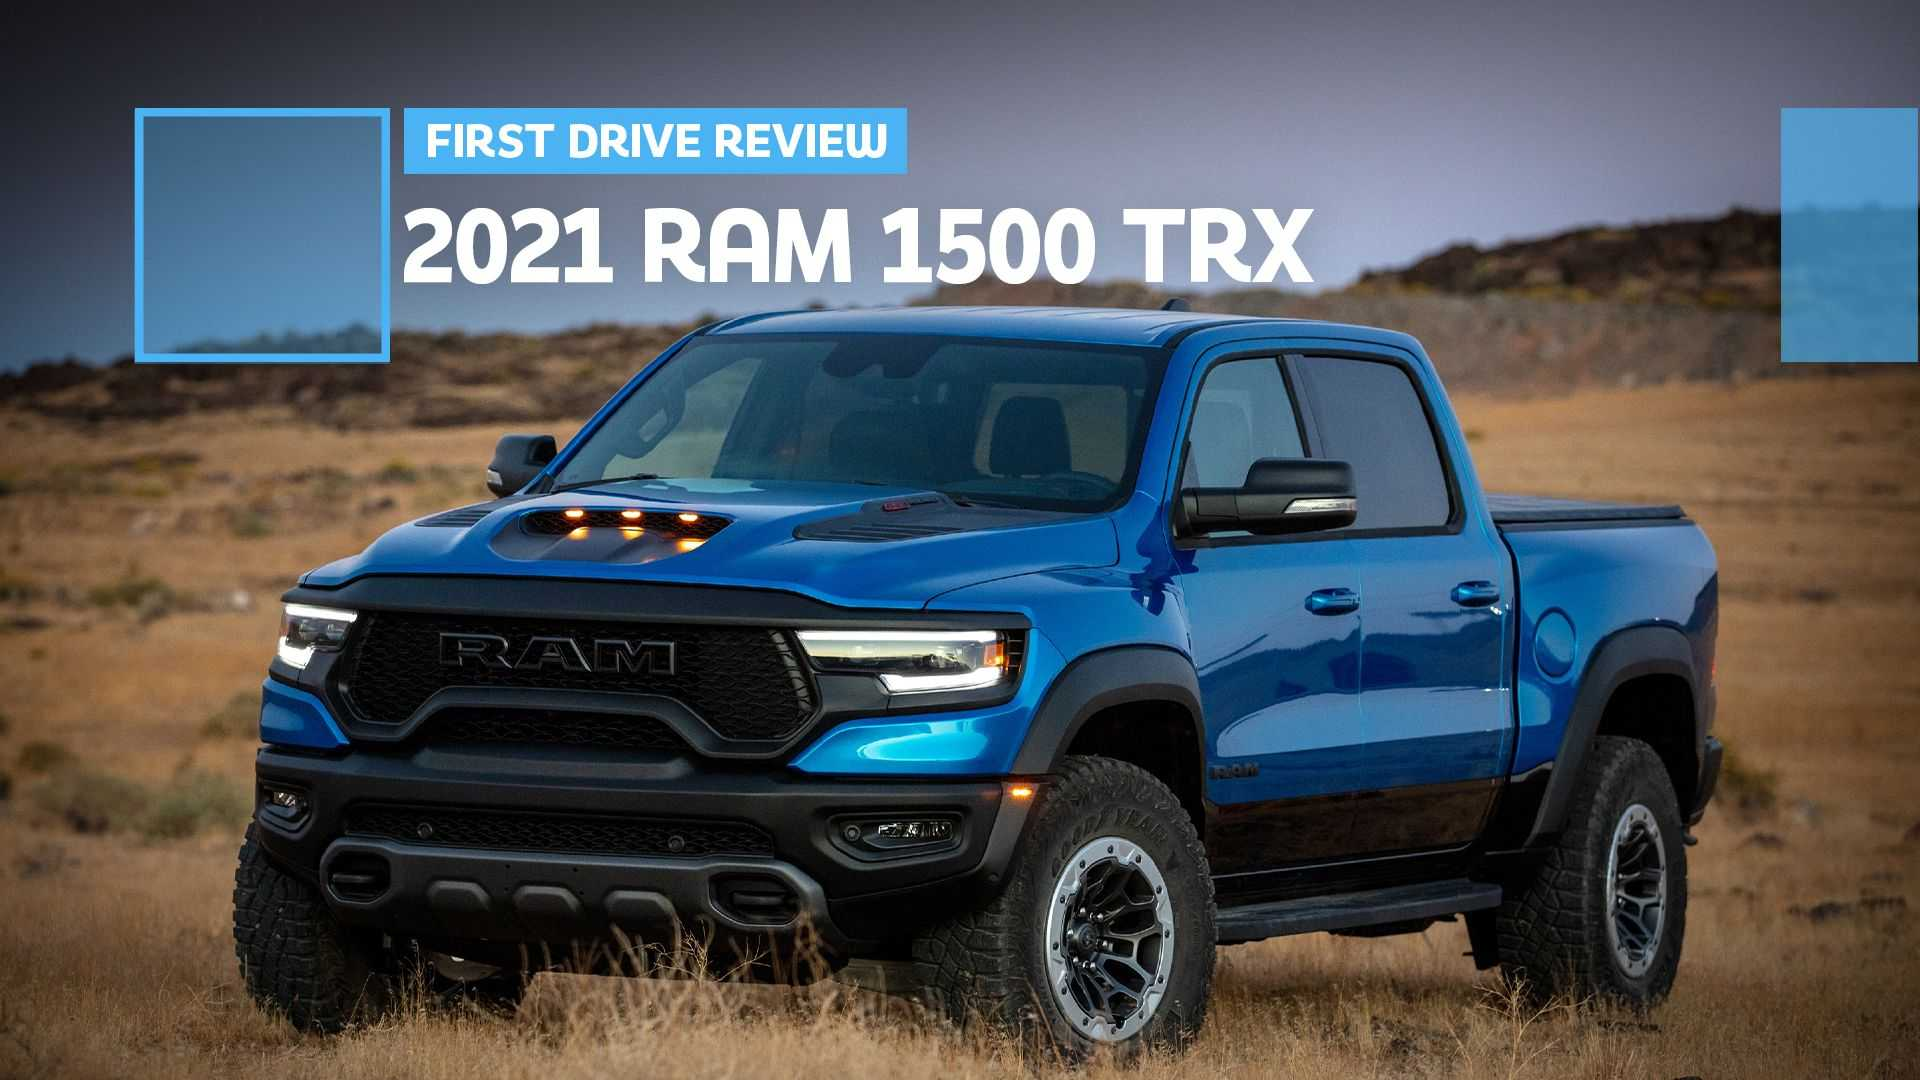 2021 Ram 1500 Trx First Drive Review More Than An Engine